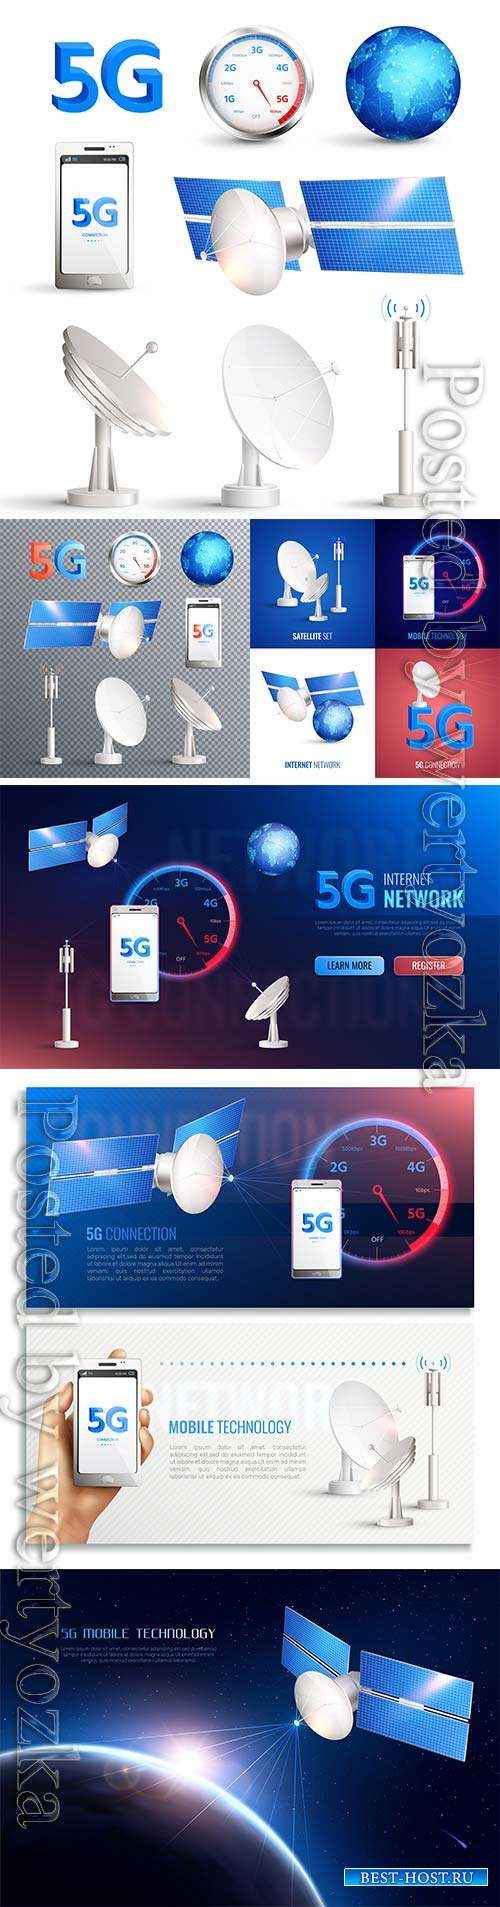 Mobile technology vector icons, broadband internet connection of 5g standar ...